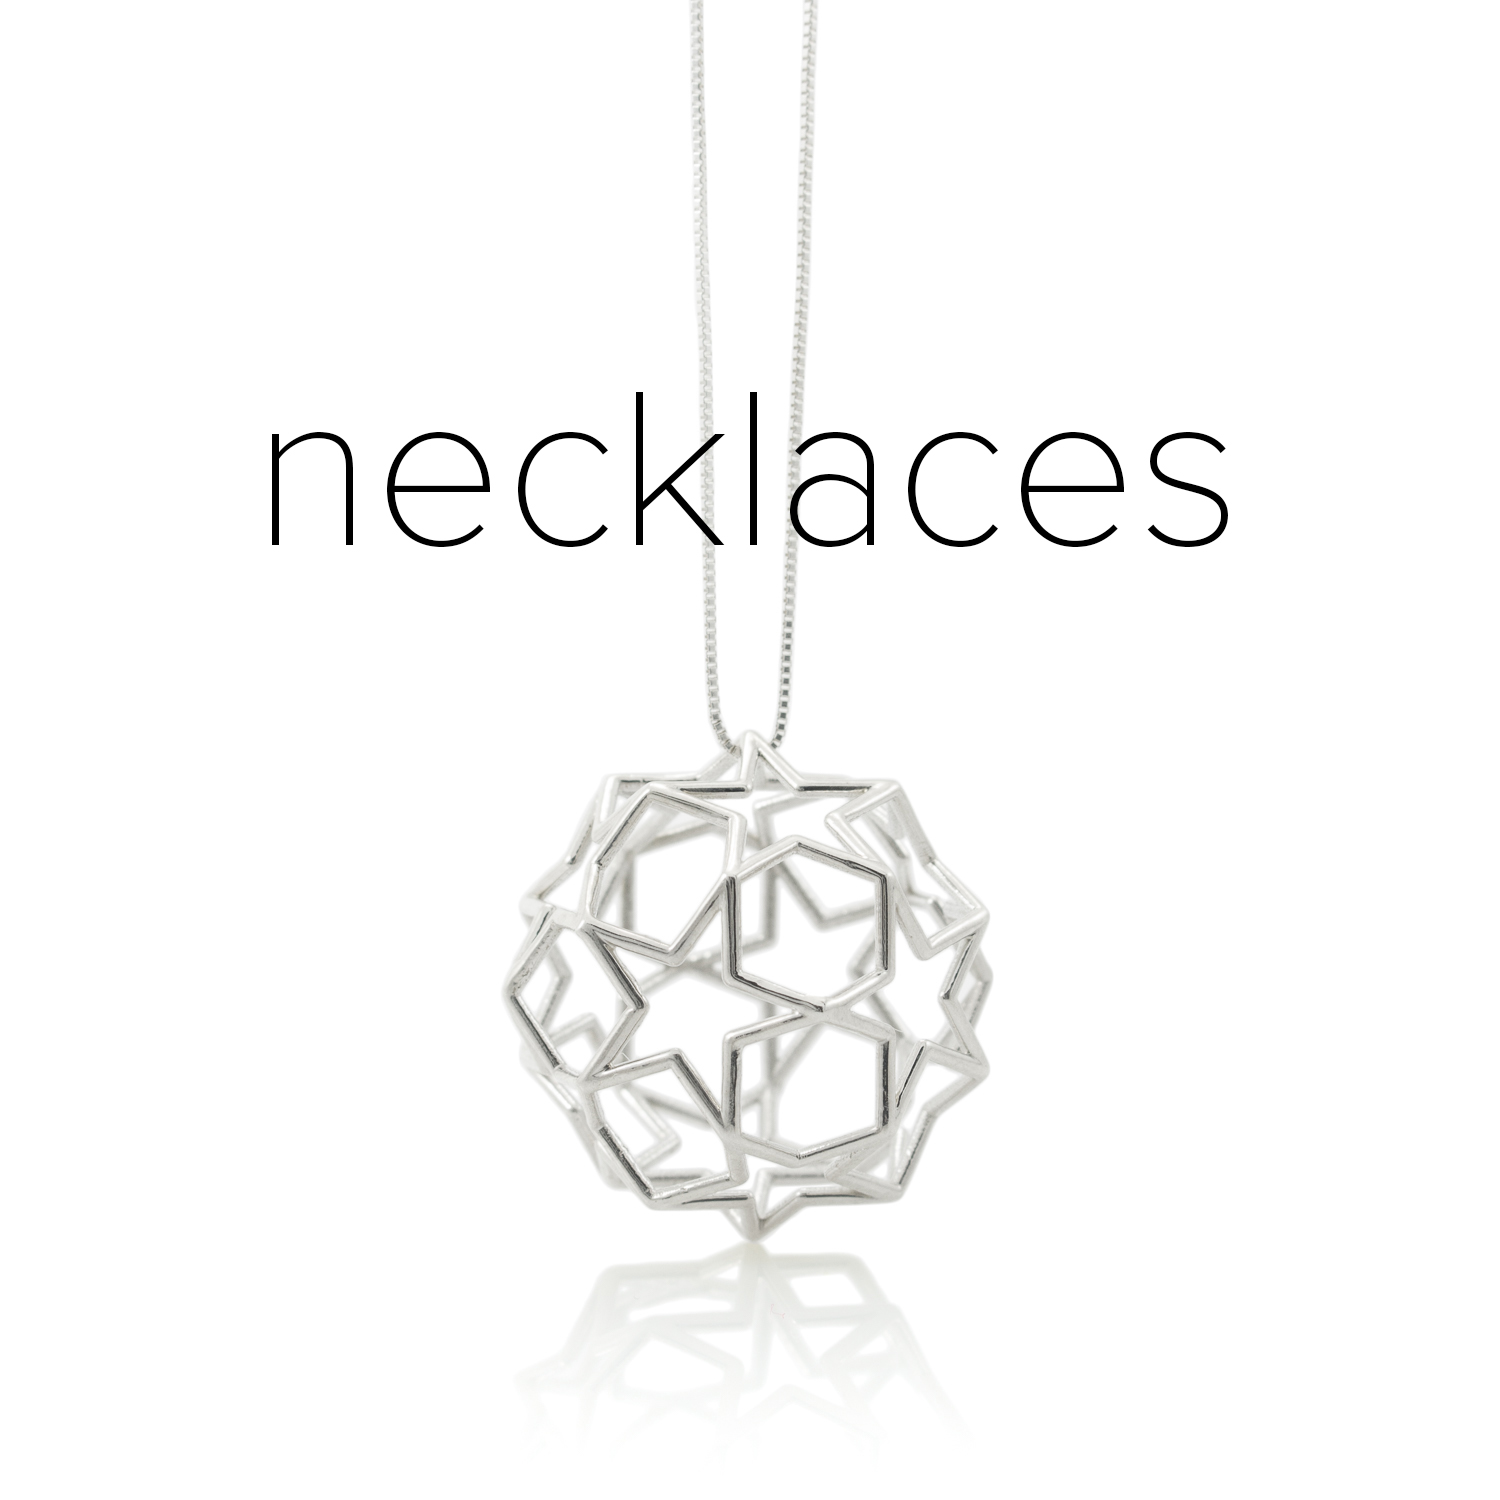 home-necklaces-2.jpg